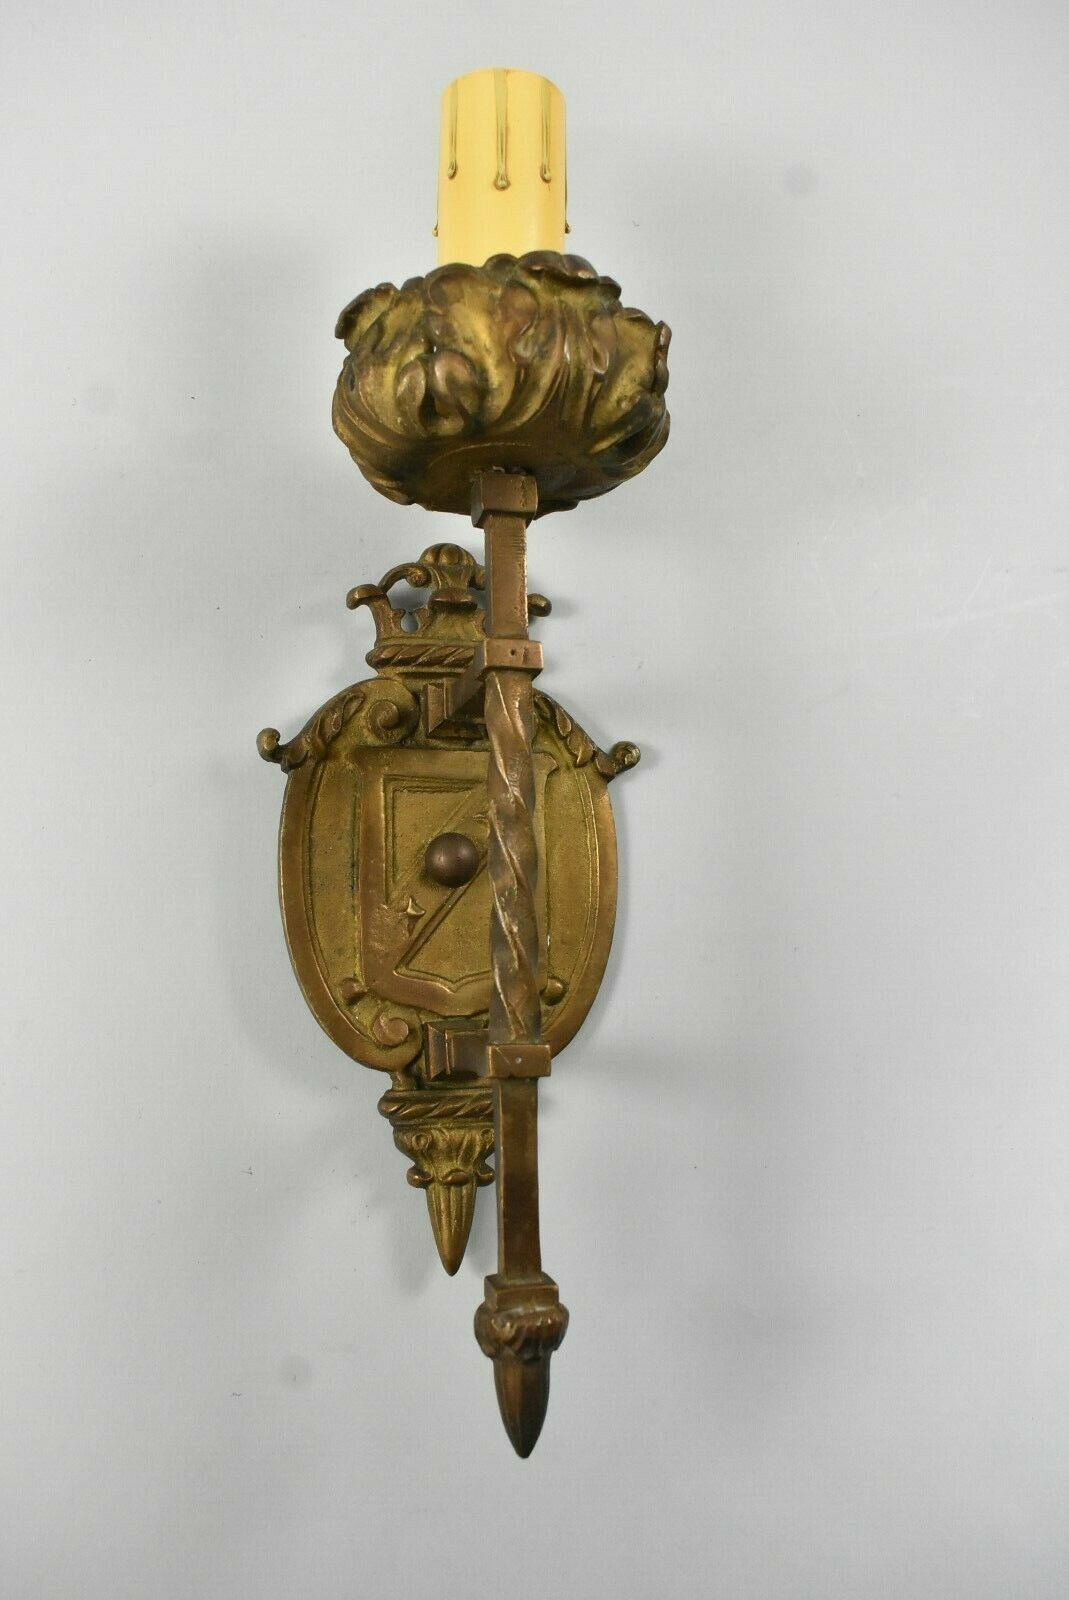 Antique Single Socket Brass Wall Sconce With Twisted